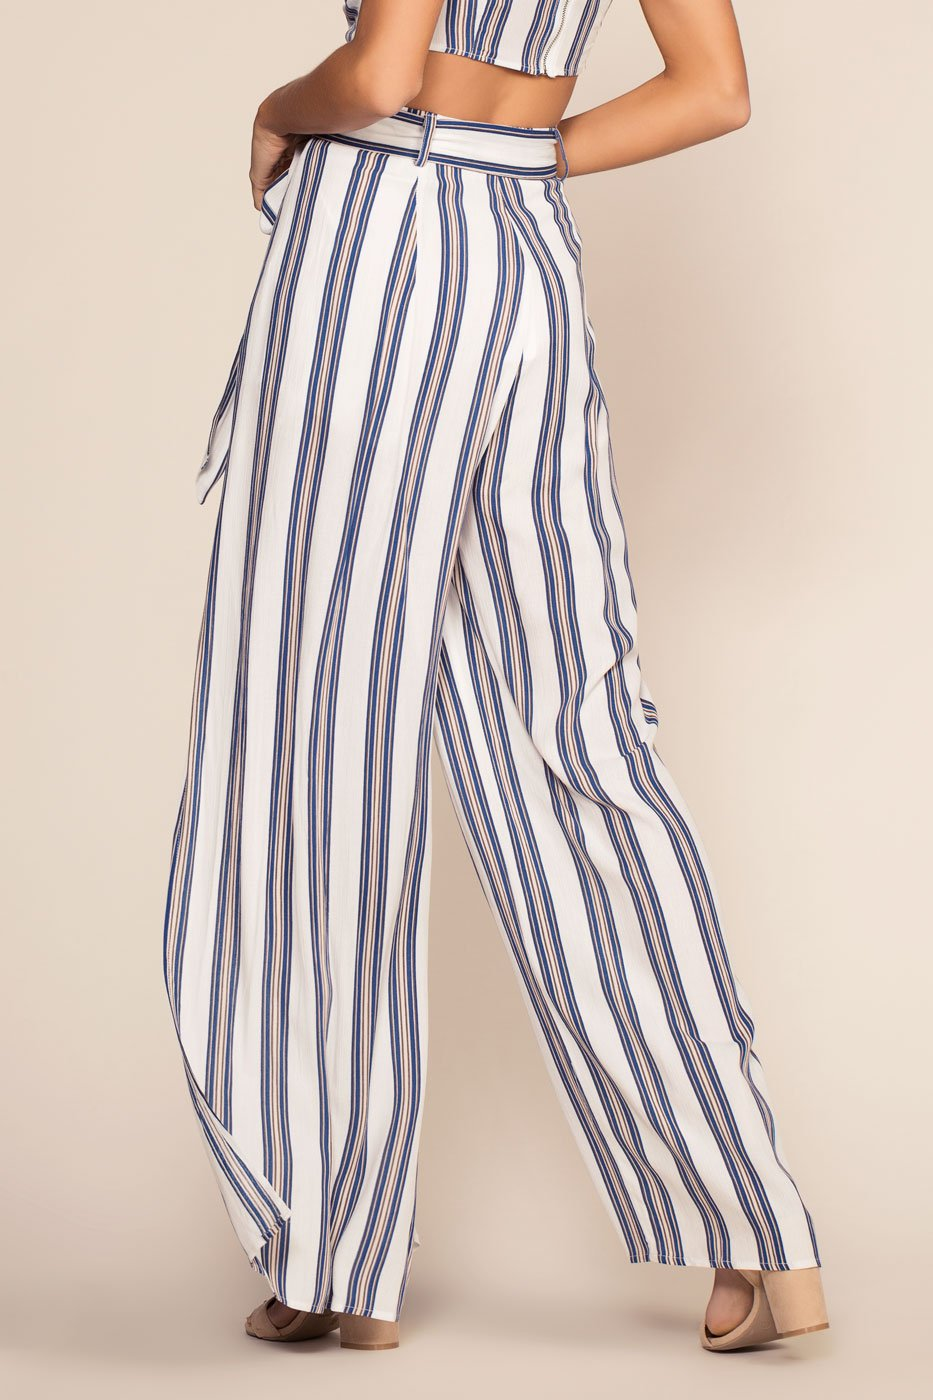 Pants - Landings Stripe High Waisted Culotte Pants